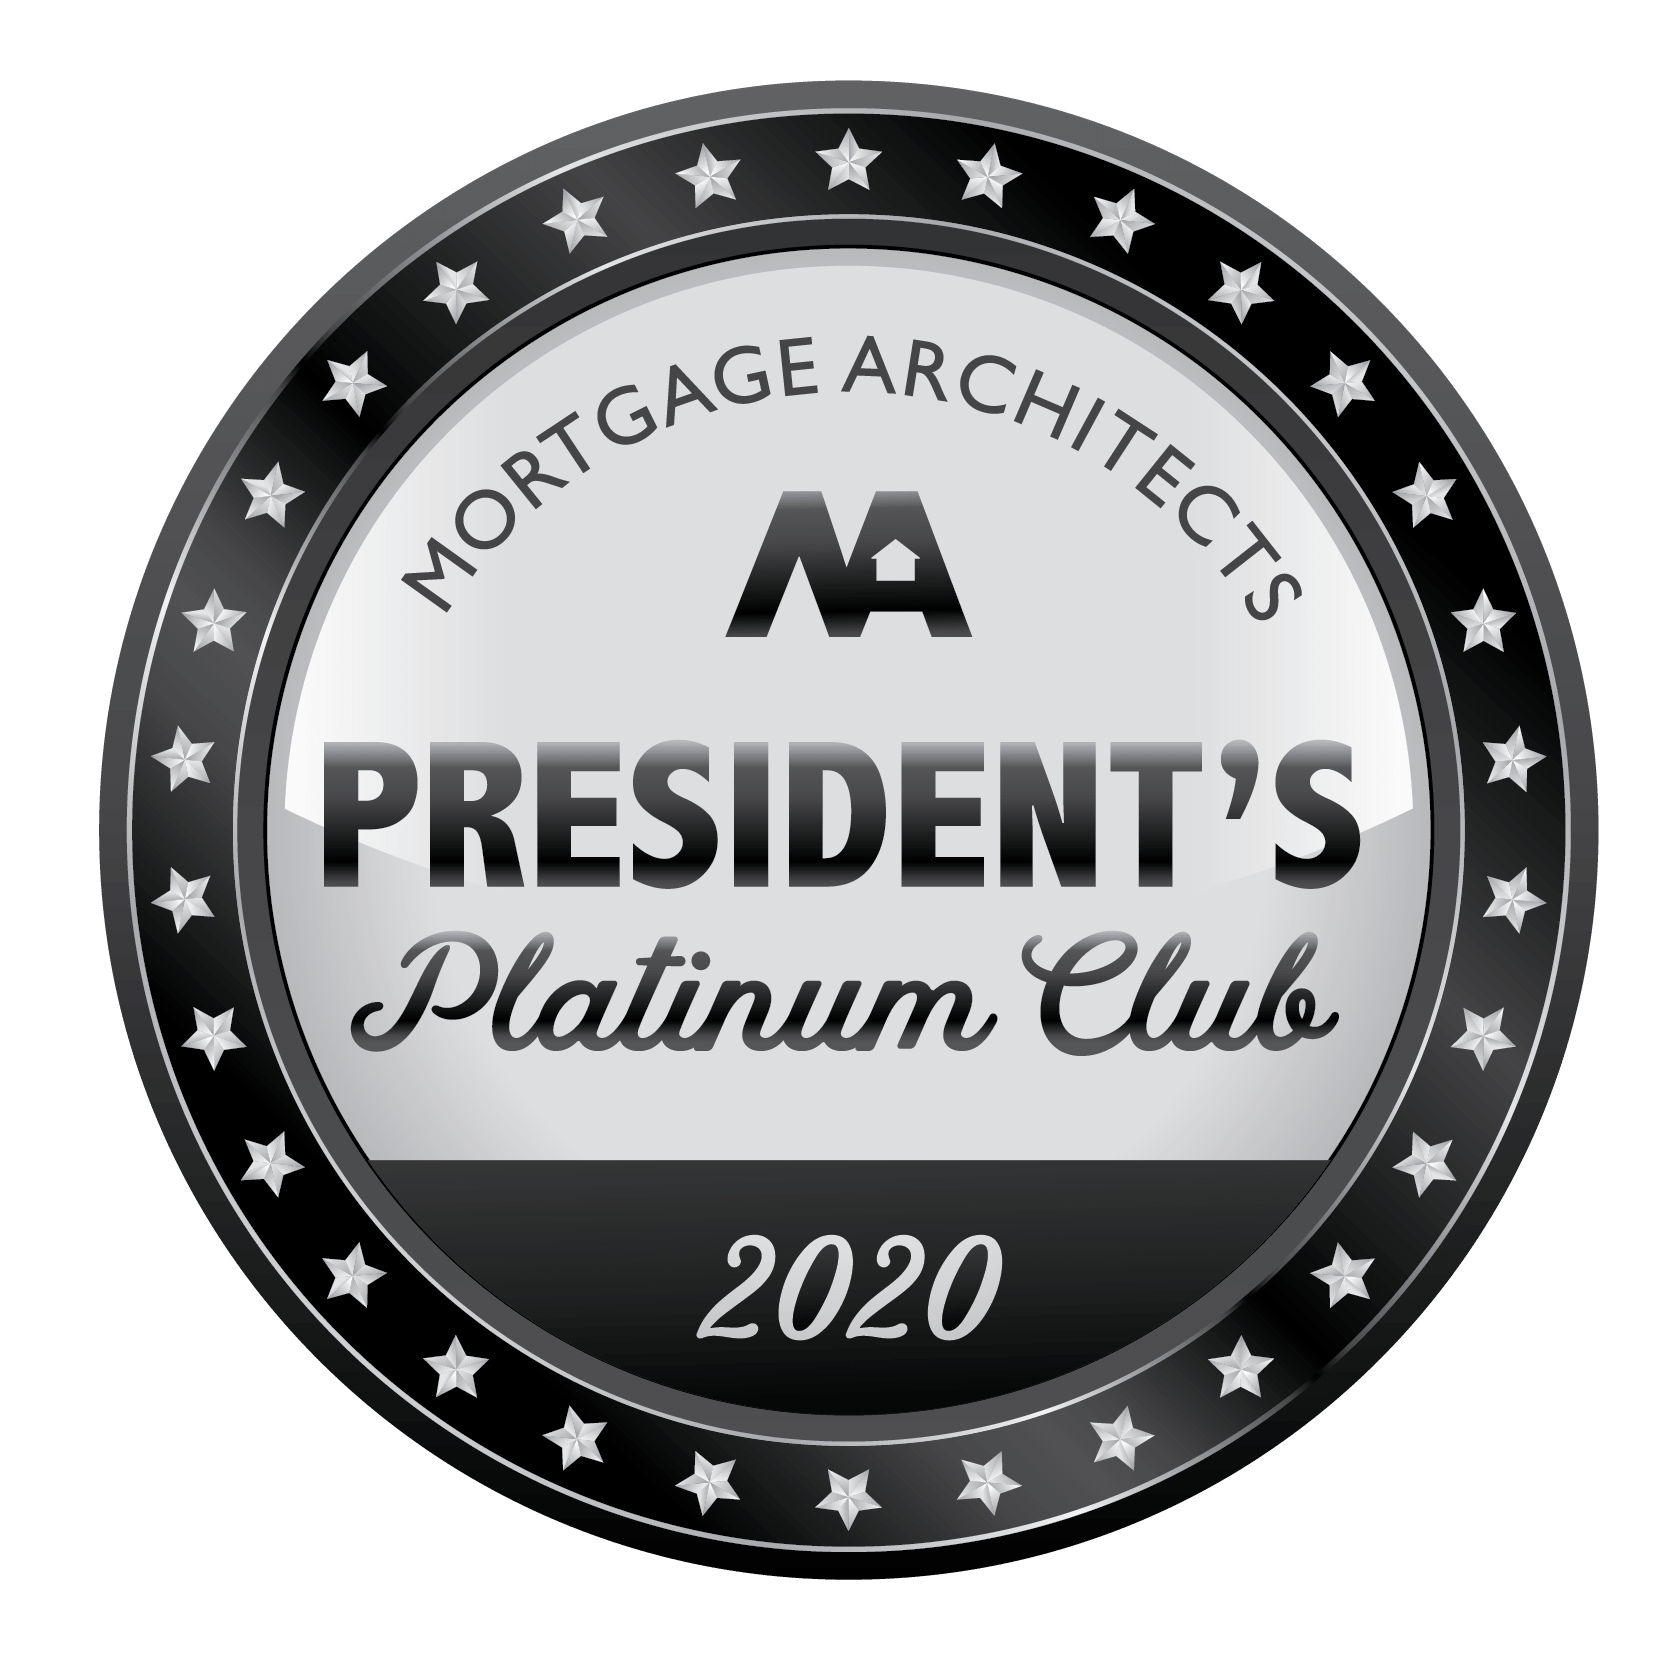 2020 Presidents Platinum Club